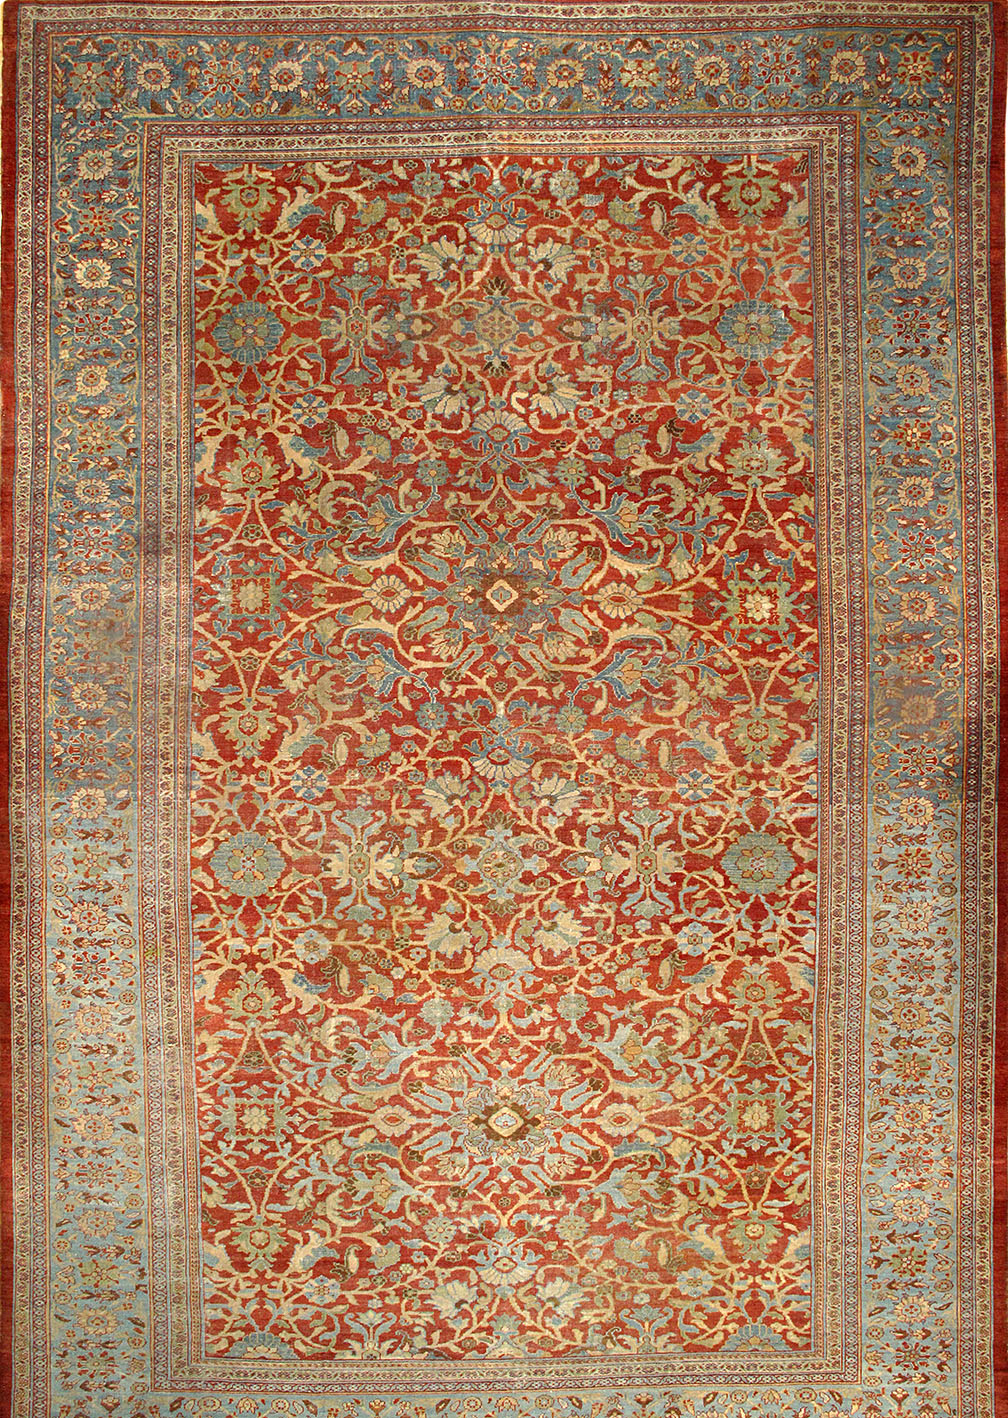 Antique sultan abad Carpet - # 54367